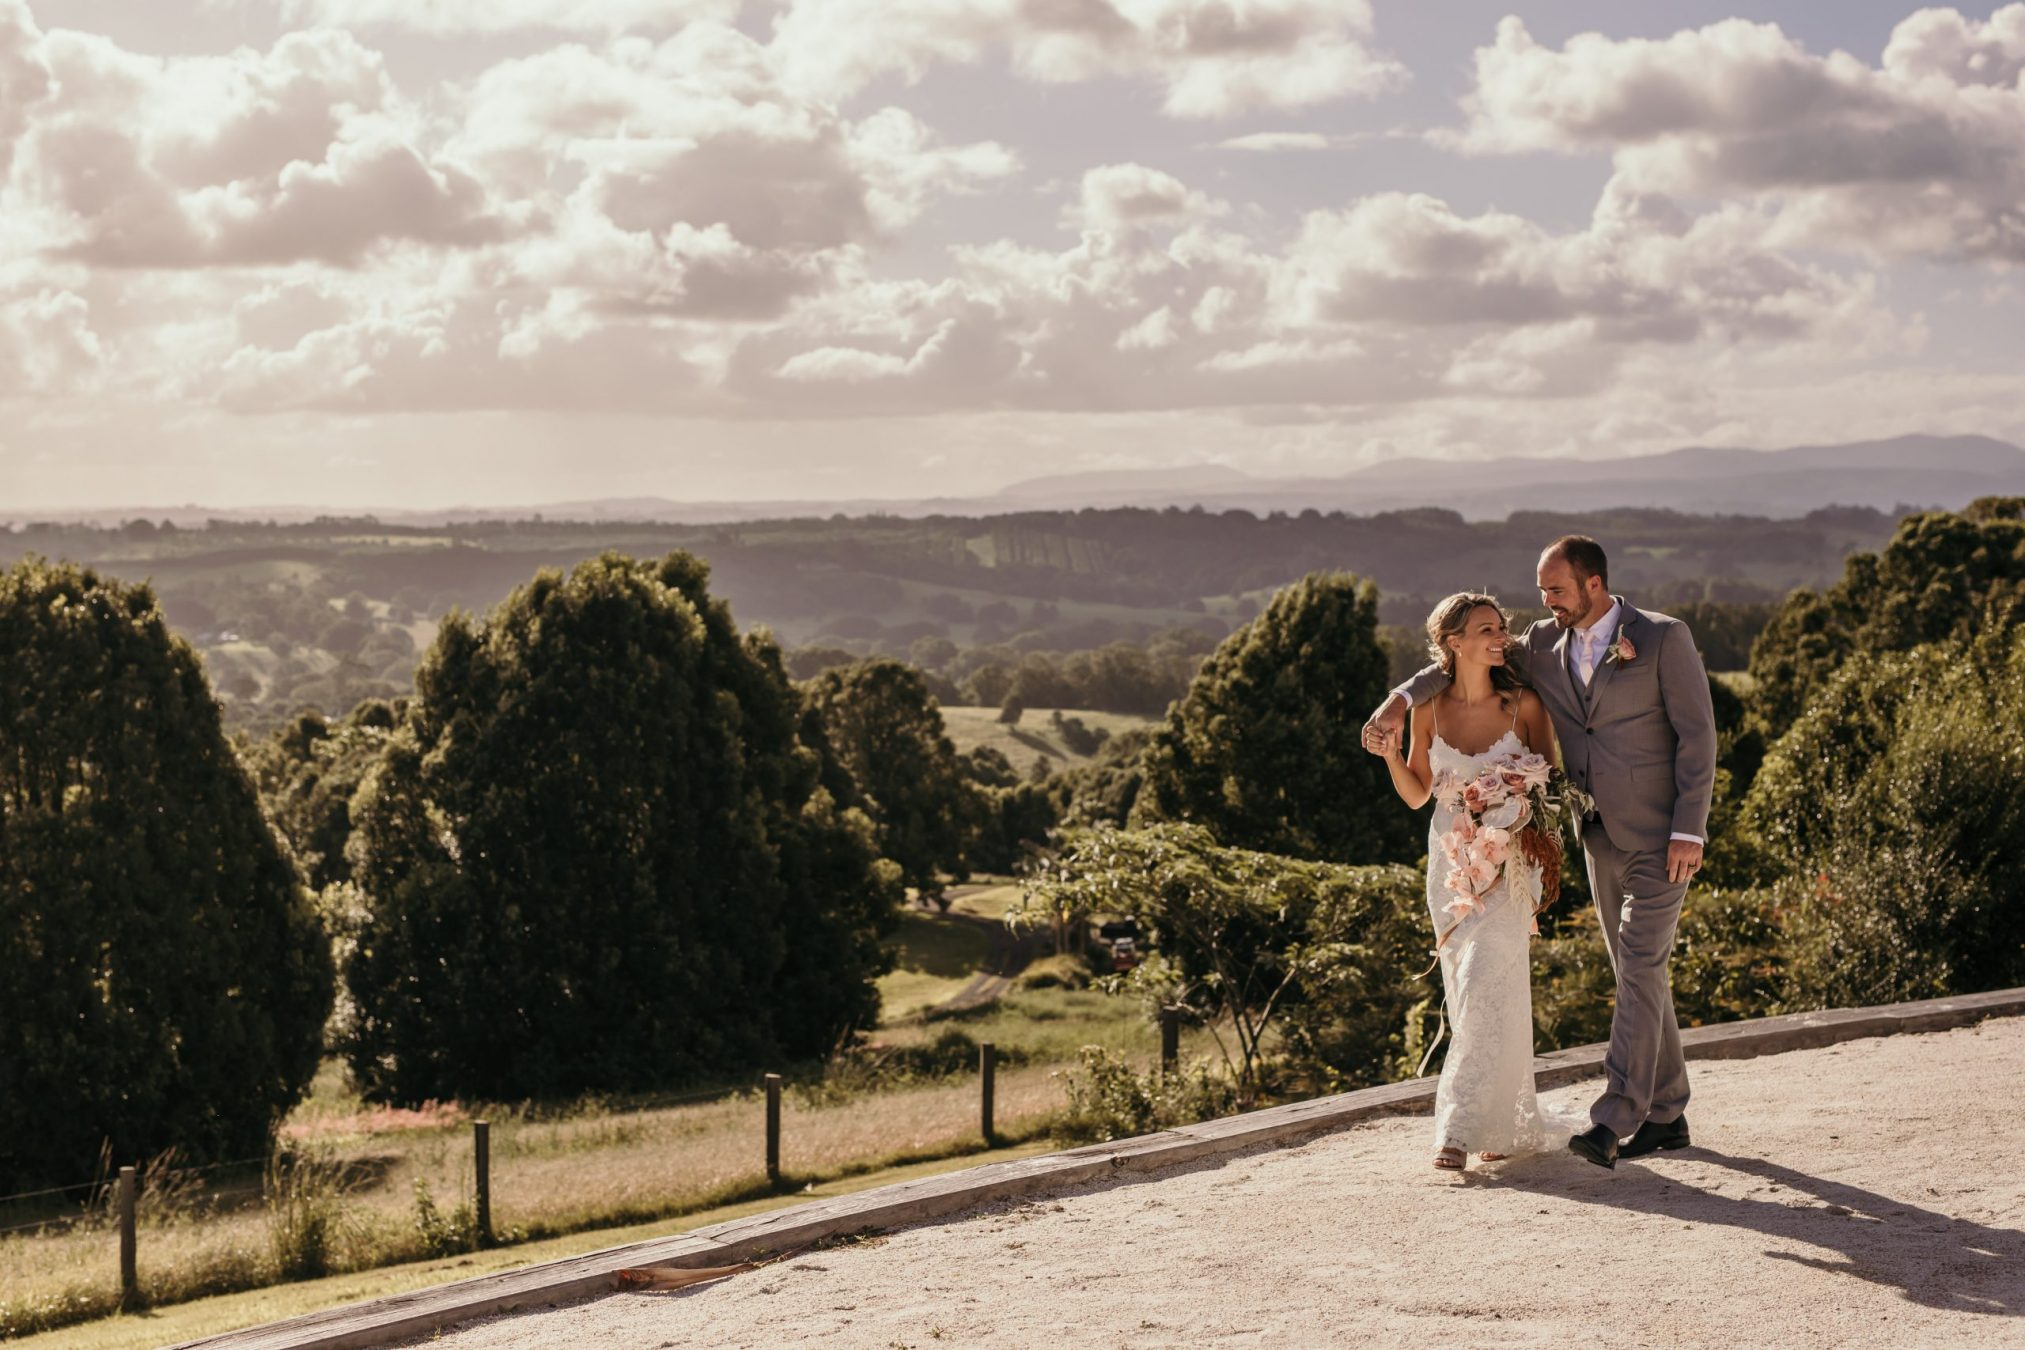 Bride and groom smile as they walk at Temple Farmhouse. Views to hillside in background.